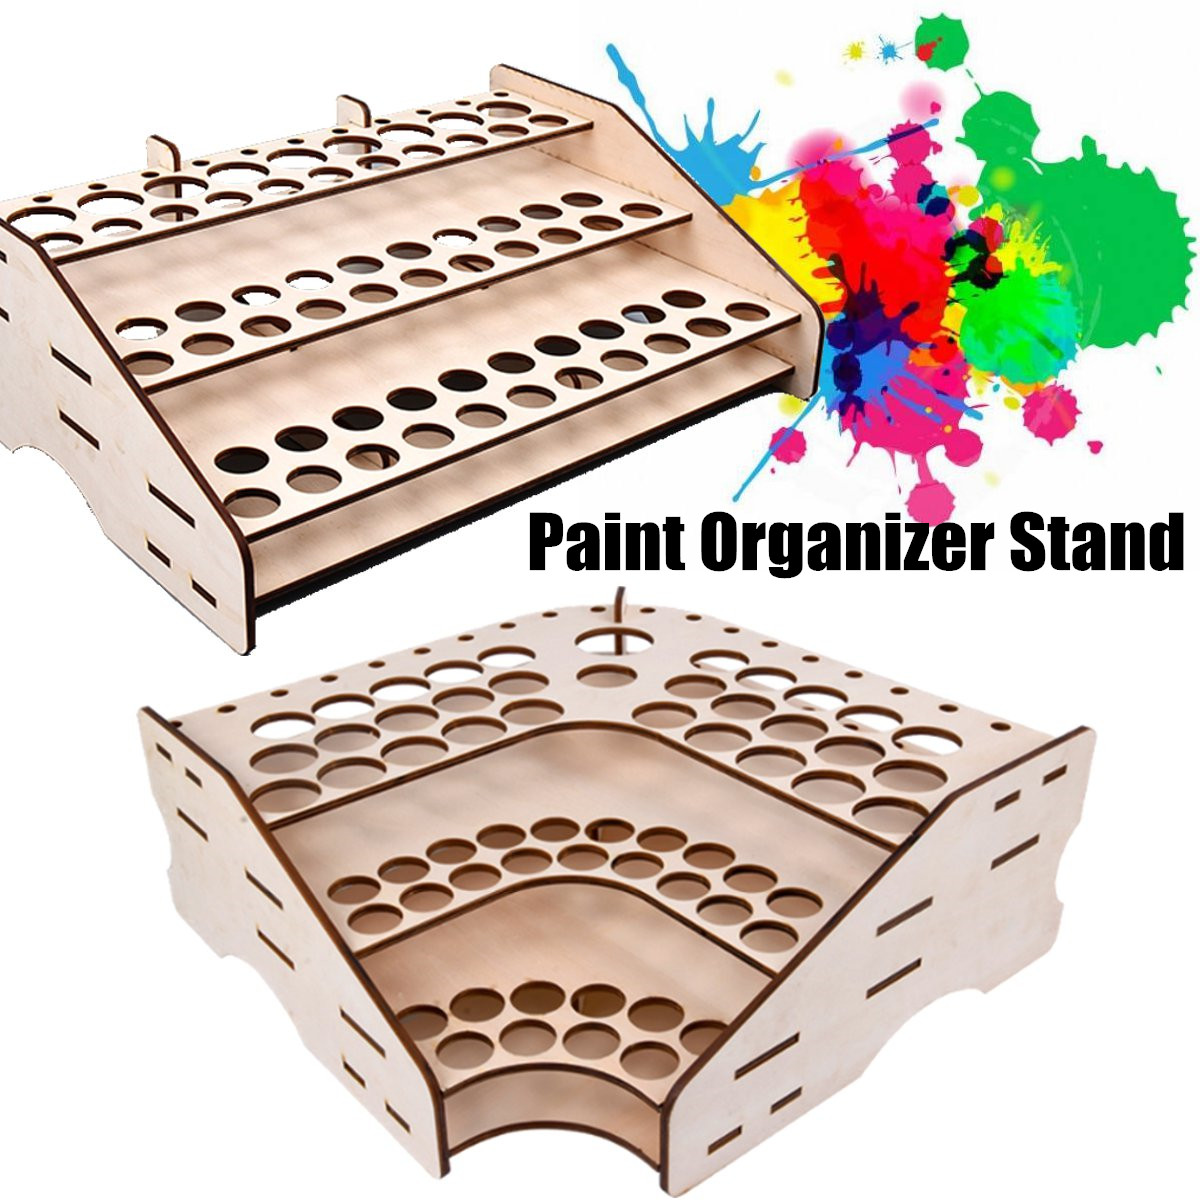 74/81 Bottles Wooden Pigment Bottle Storage Organizer Color Paint Ink Brush Stand Rack Modular Holder Home School 3 Layers